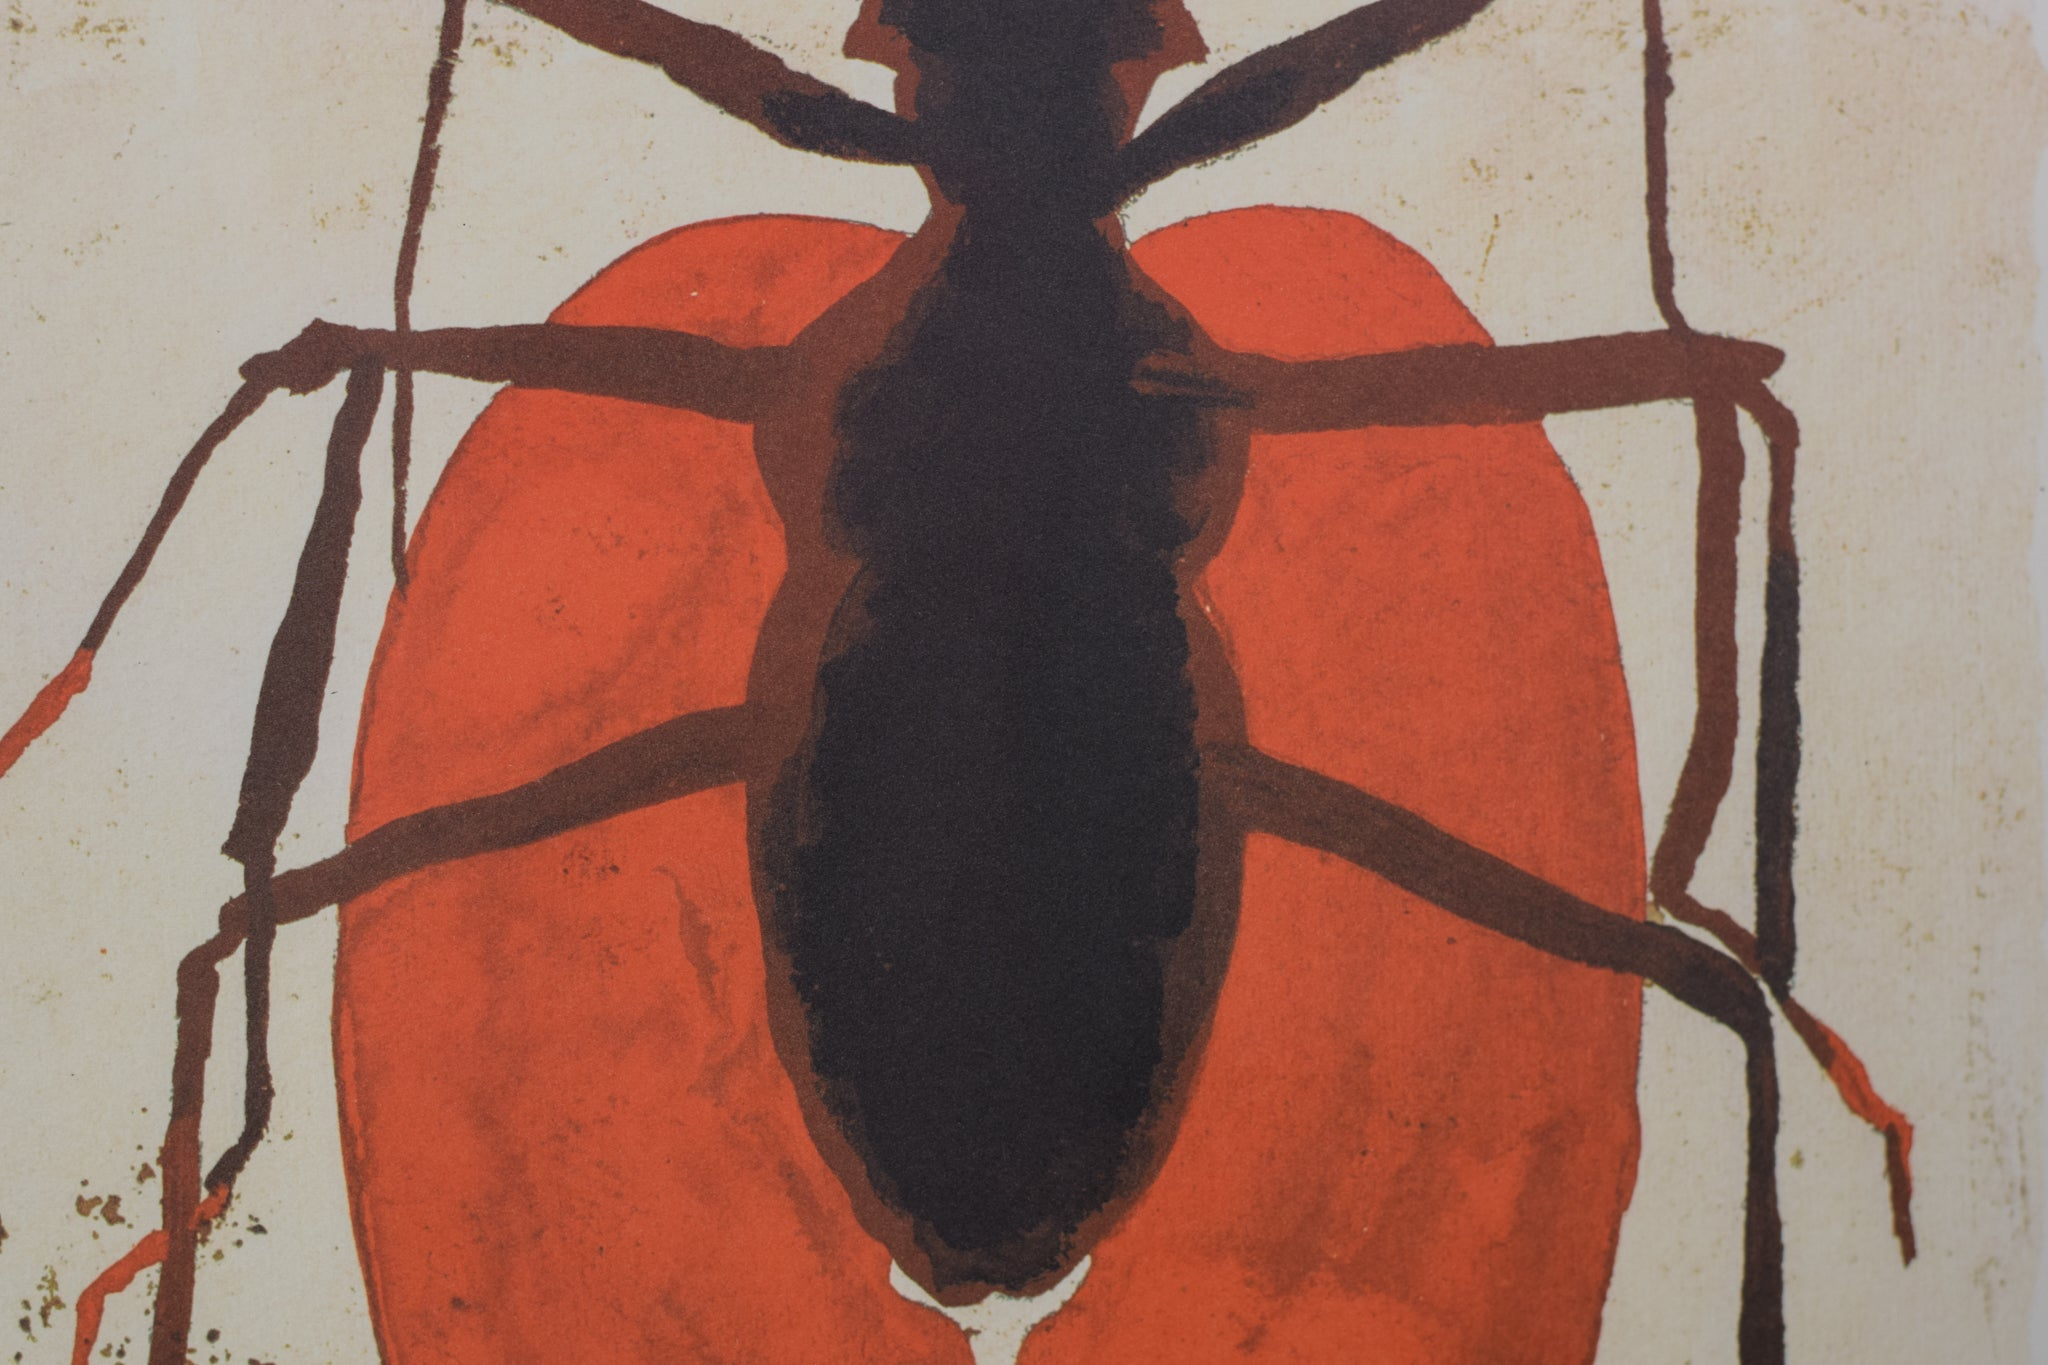 Queen Ant Lithograph in Red and Black_Detail 2